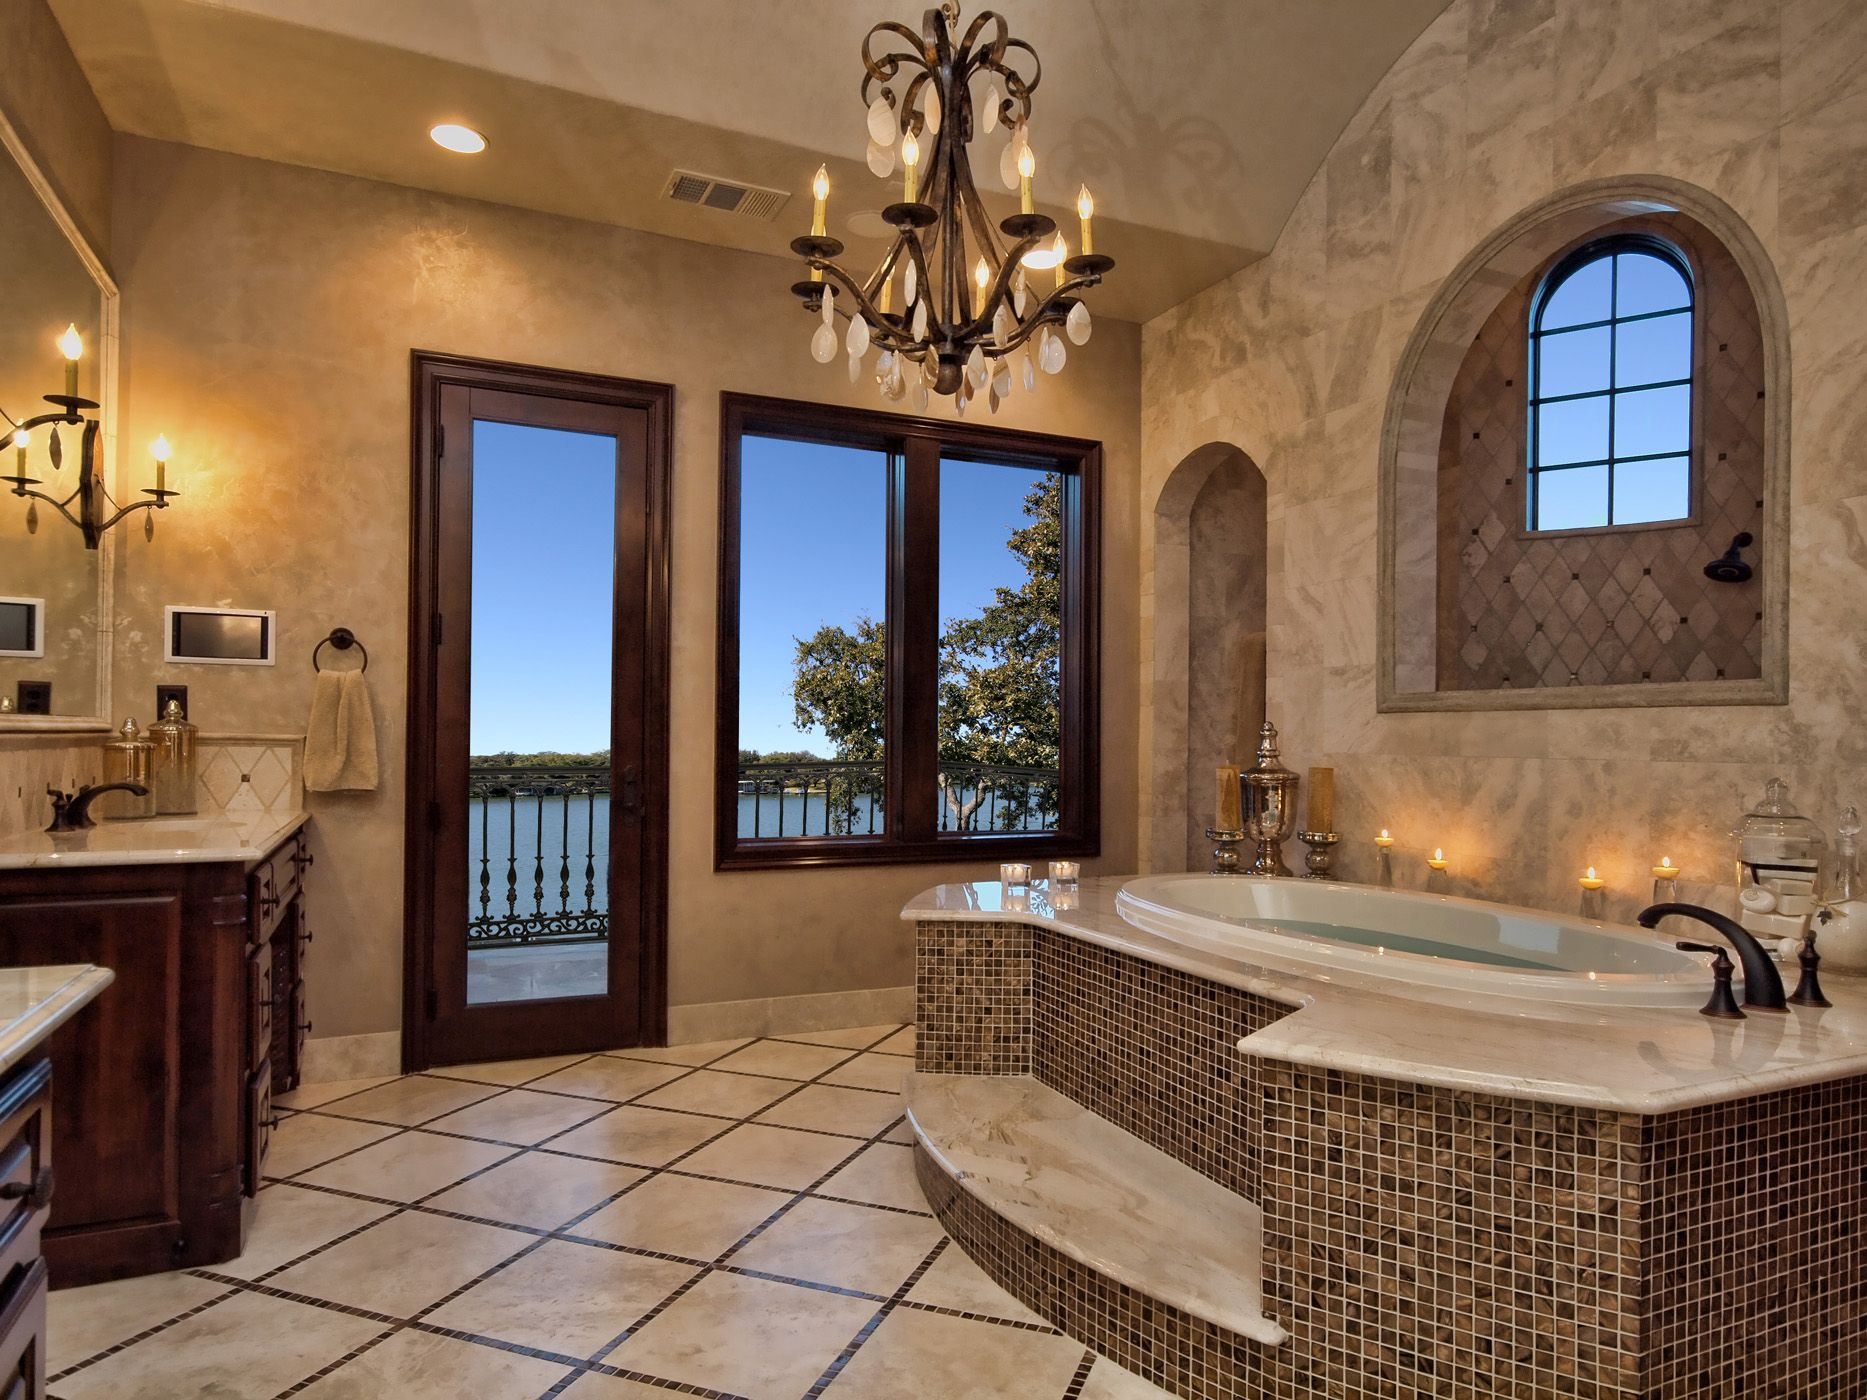 Custom bathroom designs - 21 Luxury Mediterranean Bathroom Design Ideas